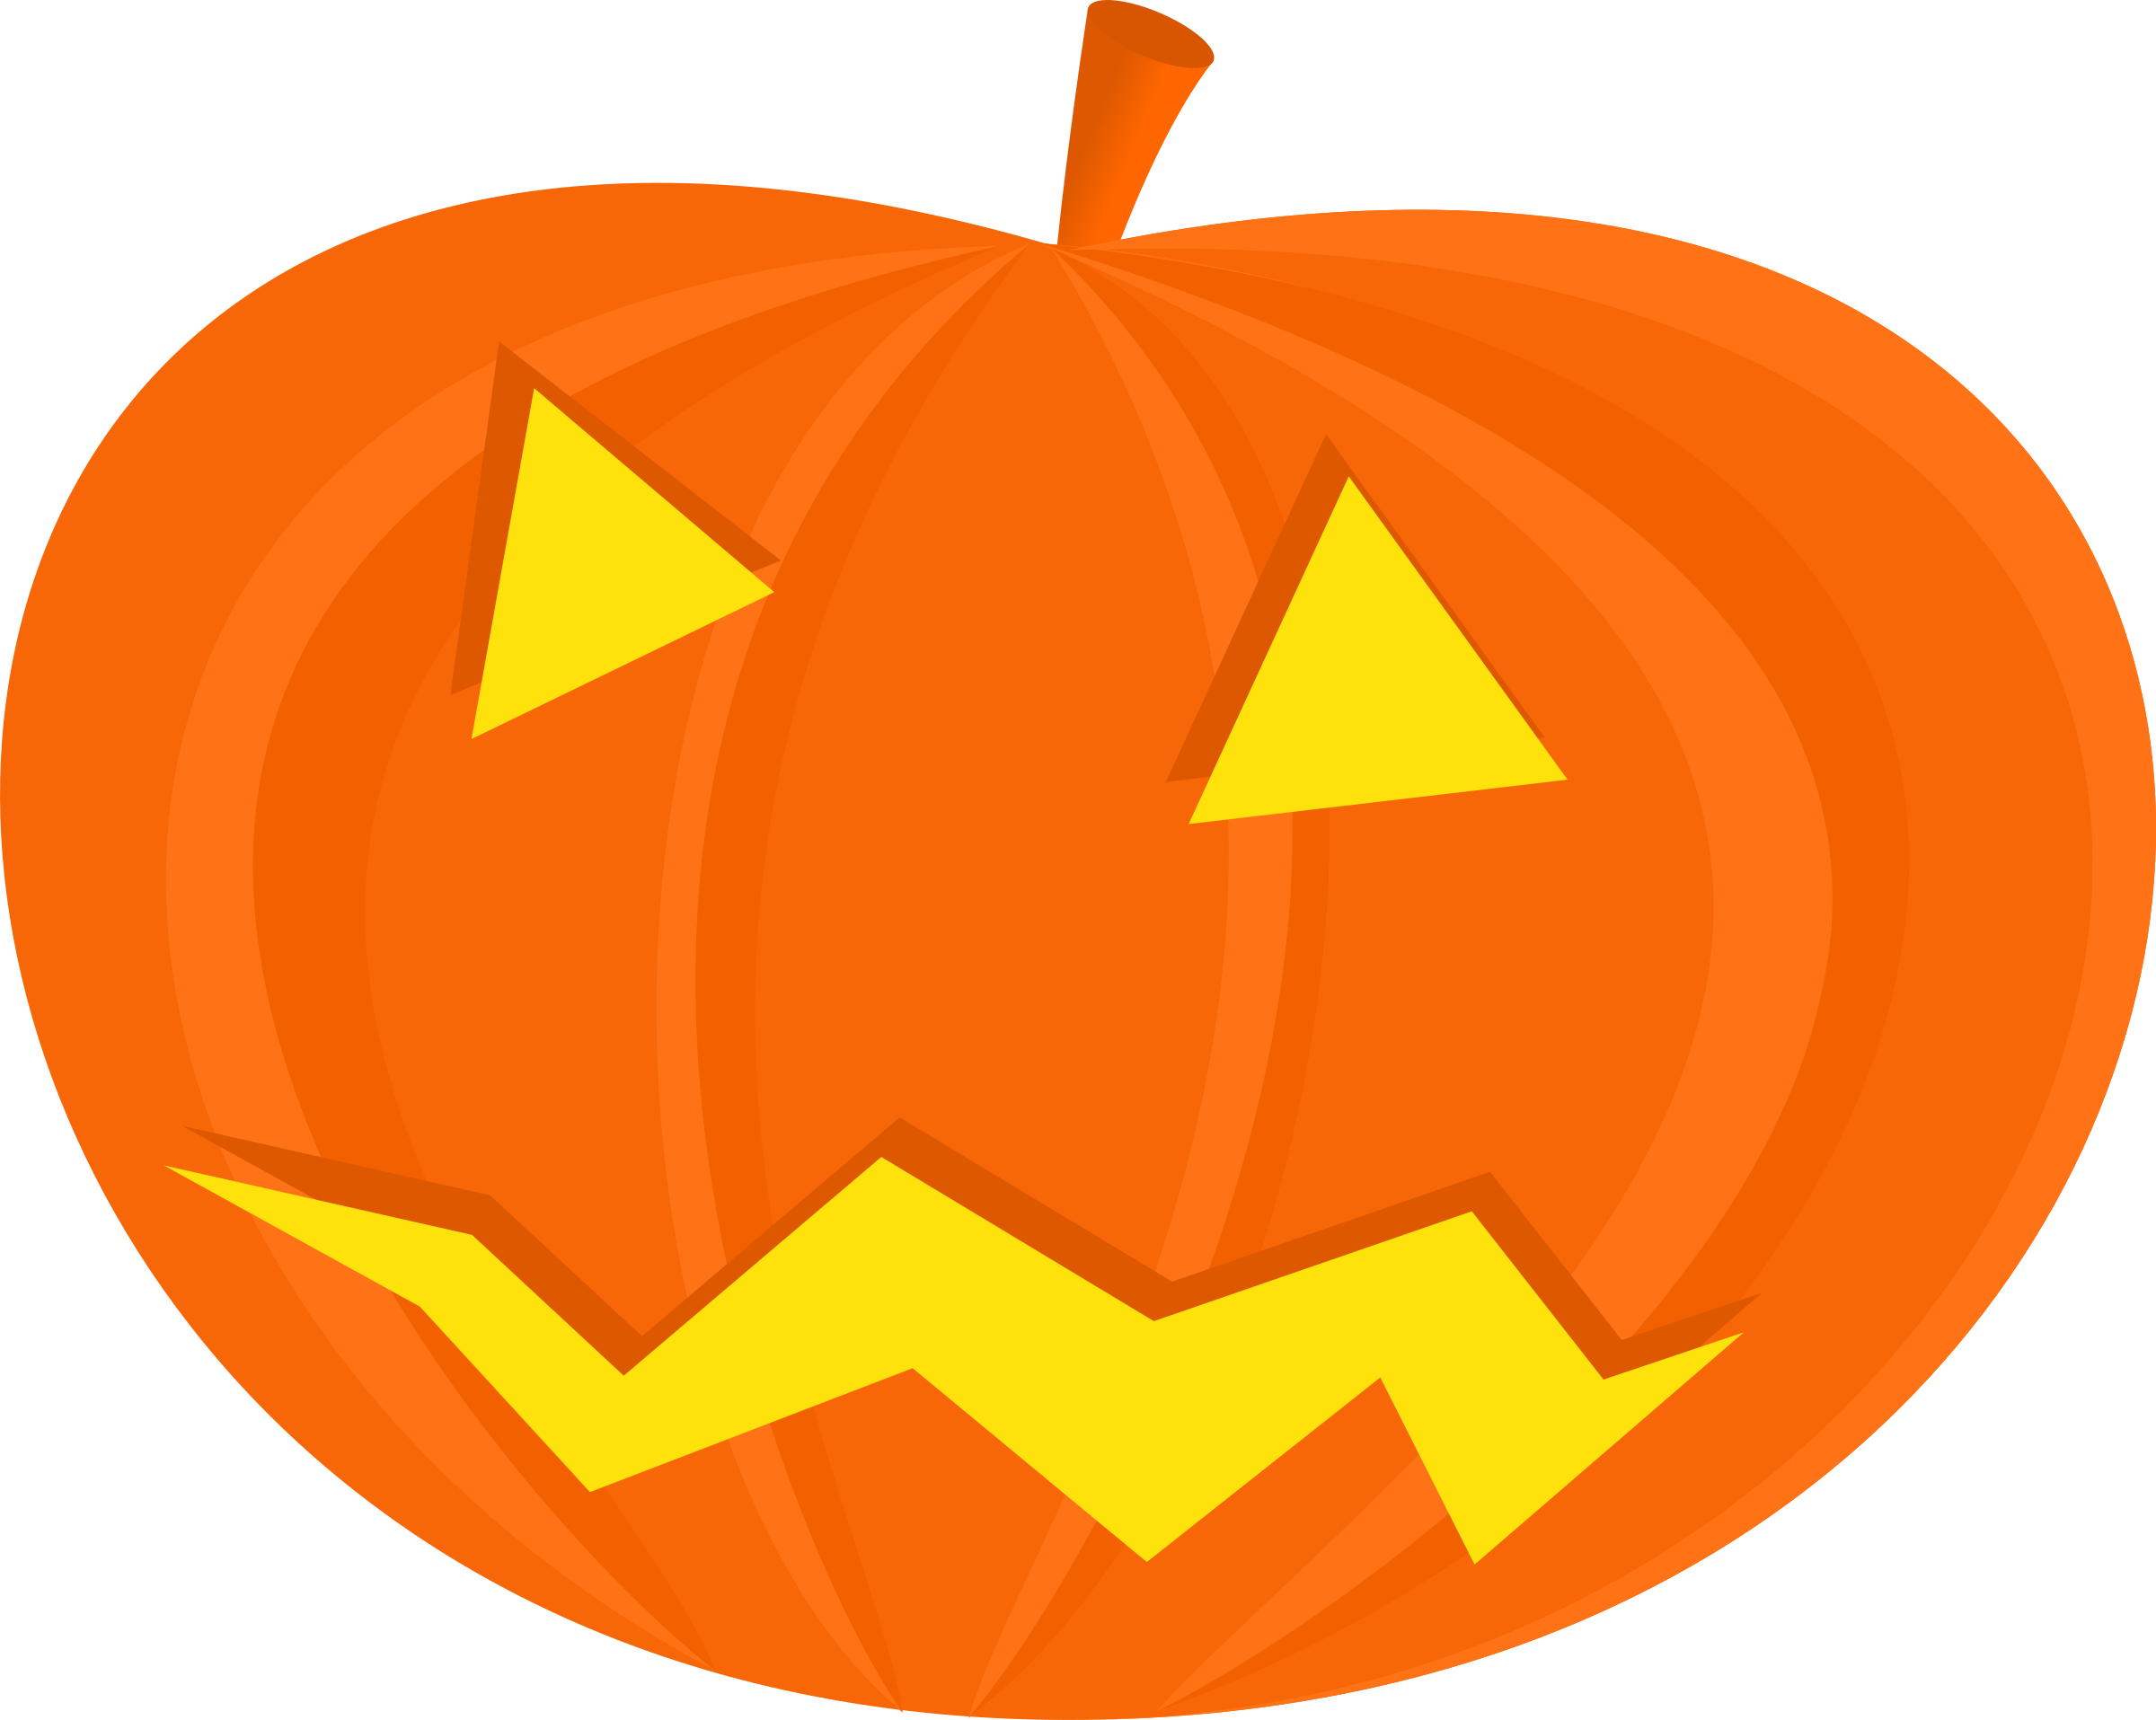 Pumpkin with cut for face clipart picture freeuse download Clipart - halloween pumpkins picture freeuse download